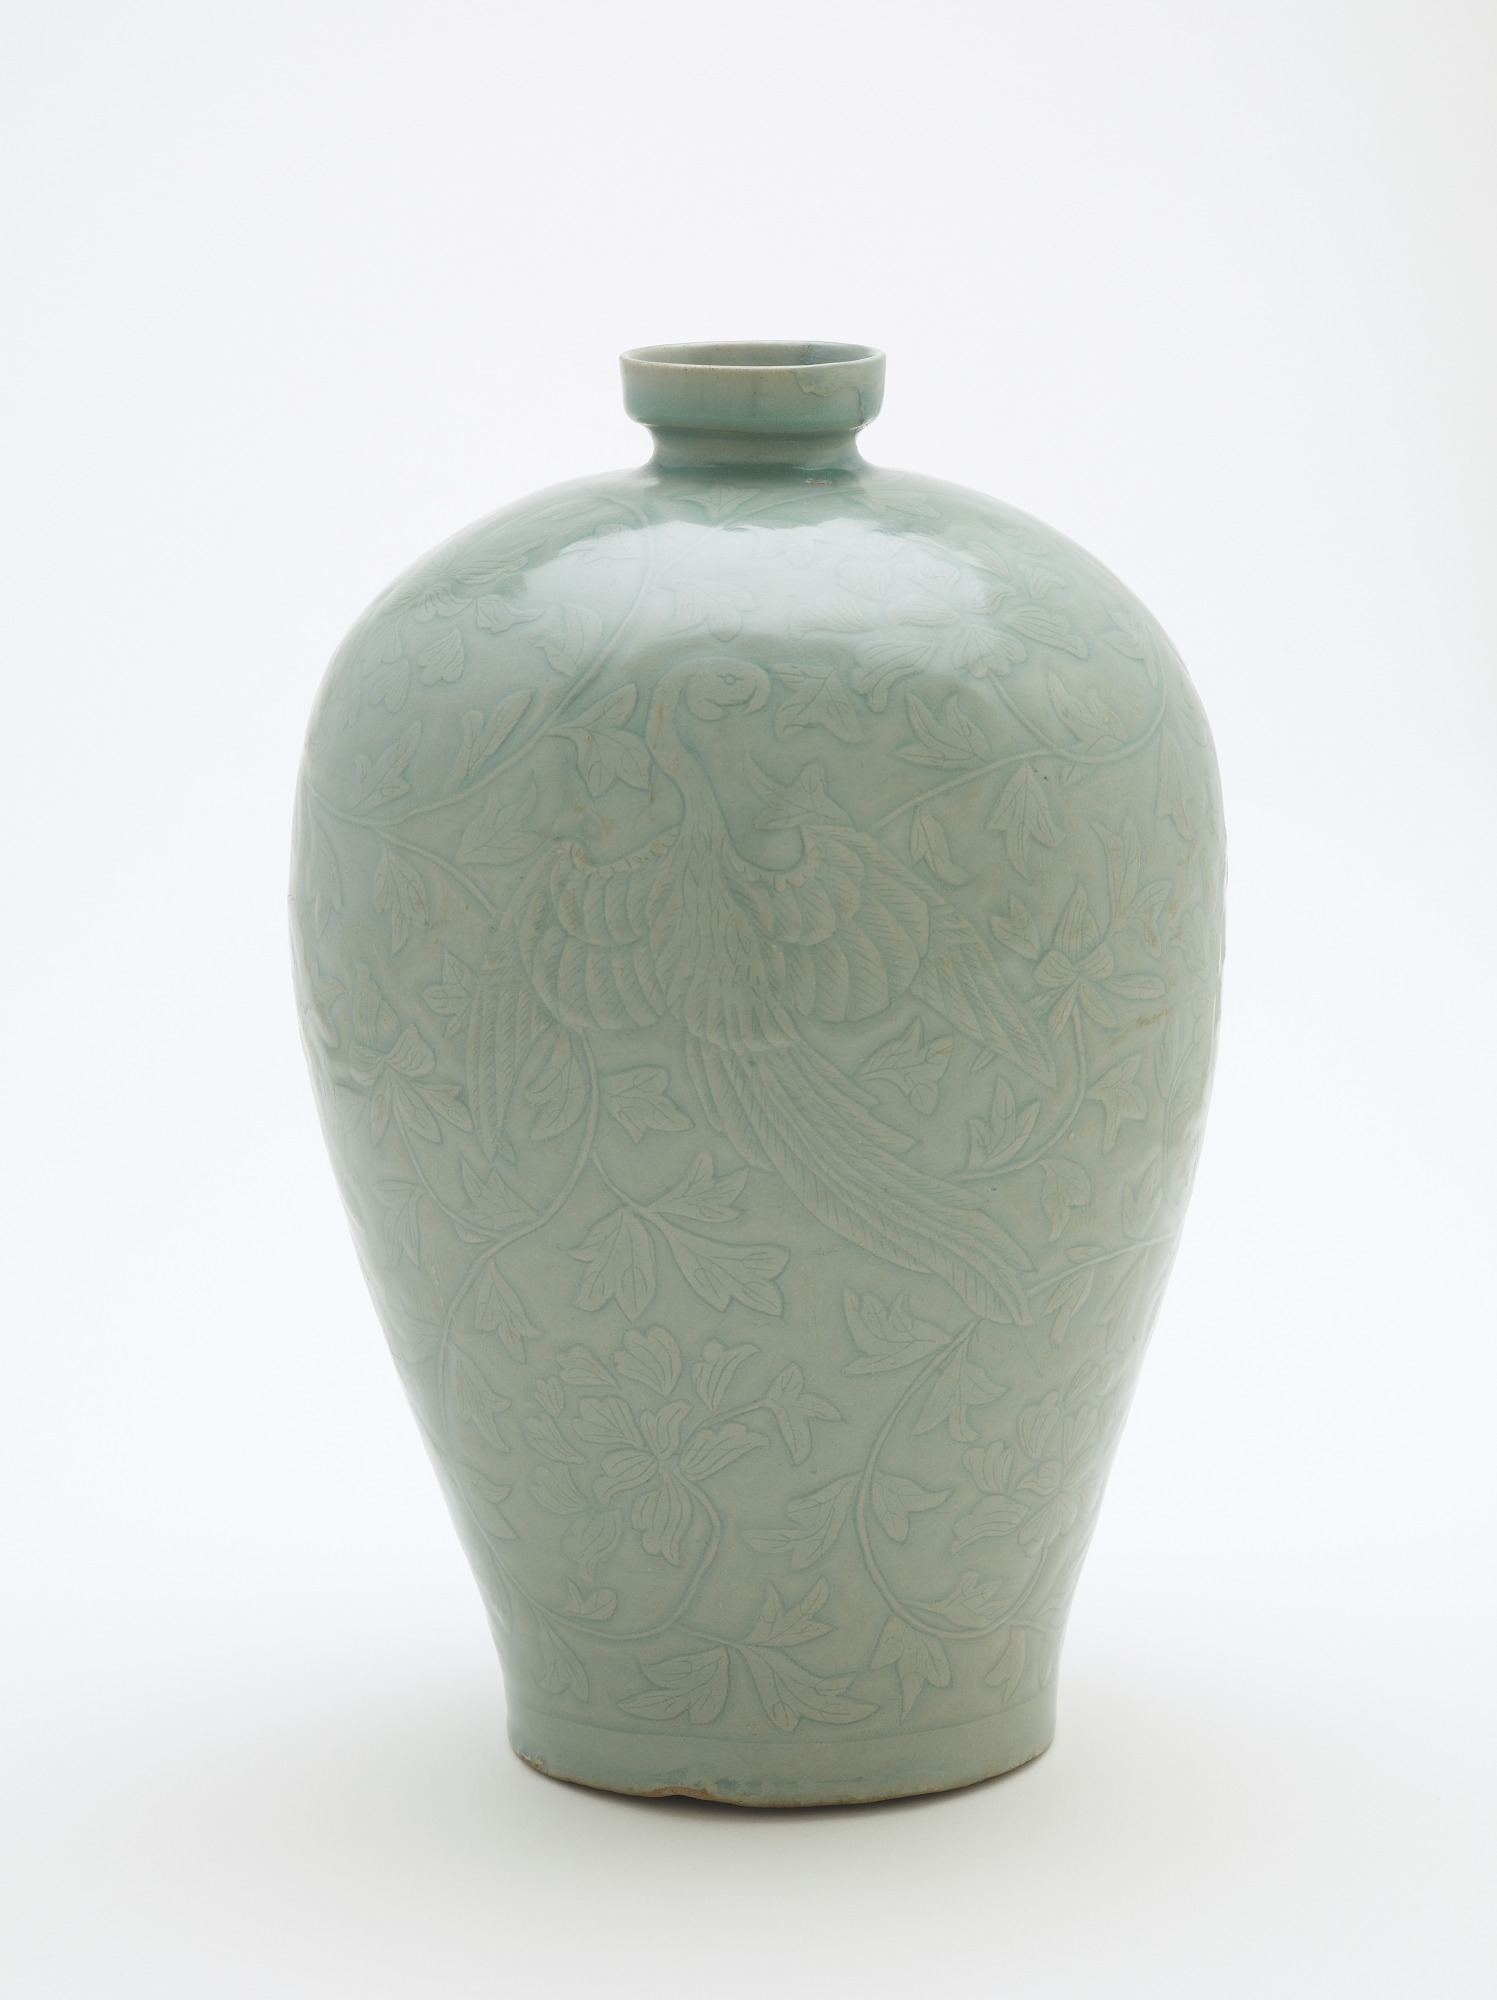 Bottle with carved and incised design of two phoenixes and peony vinescrolls, profile